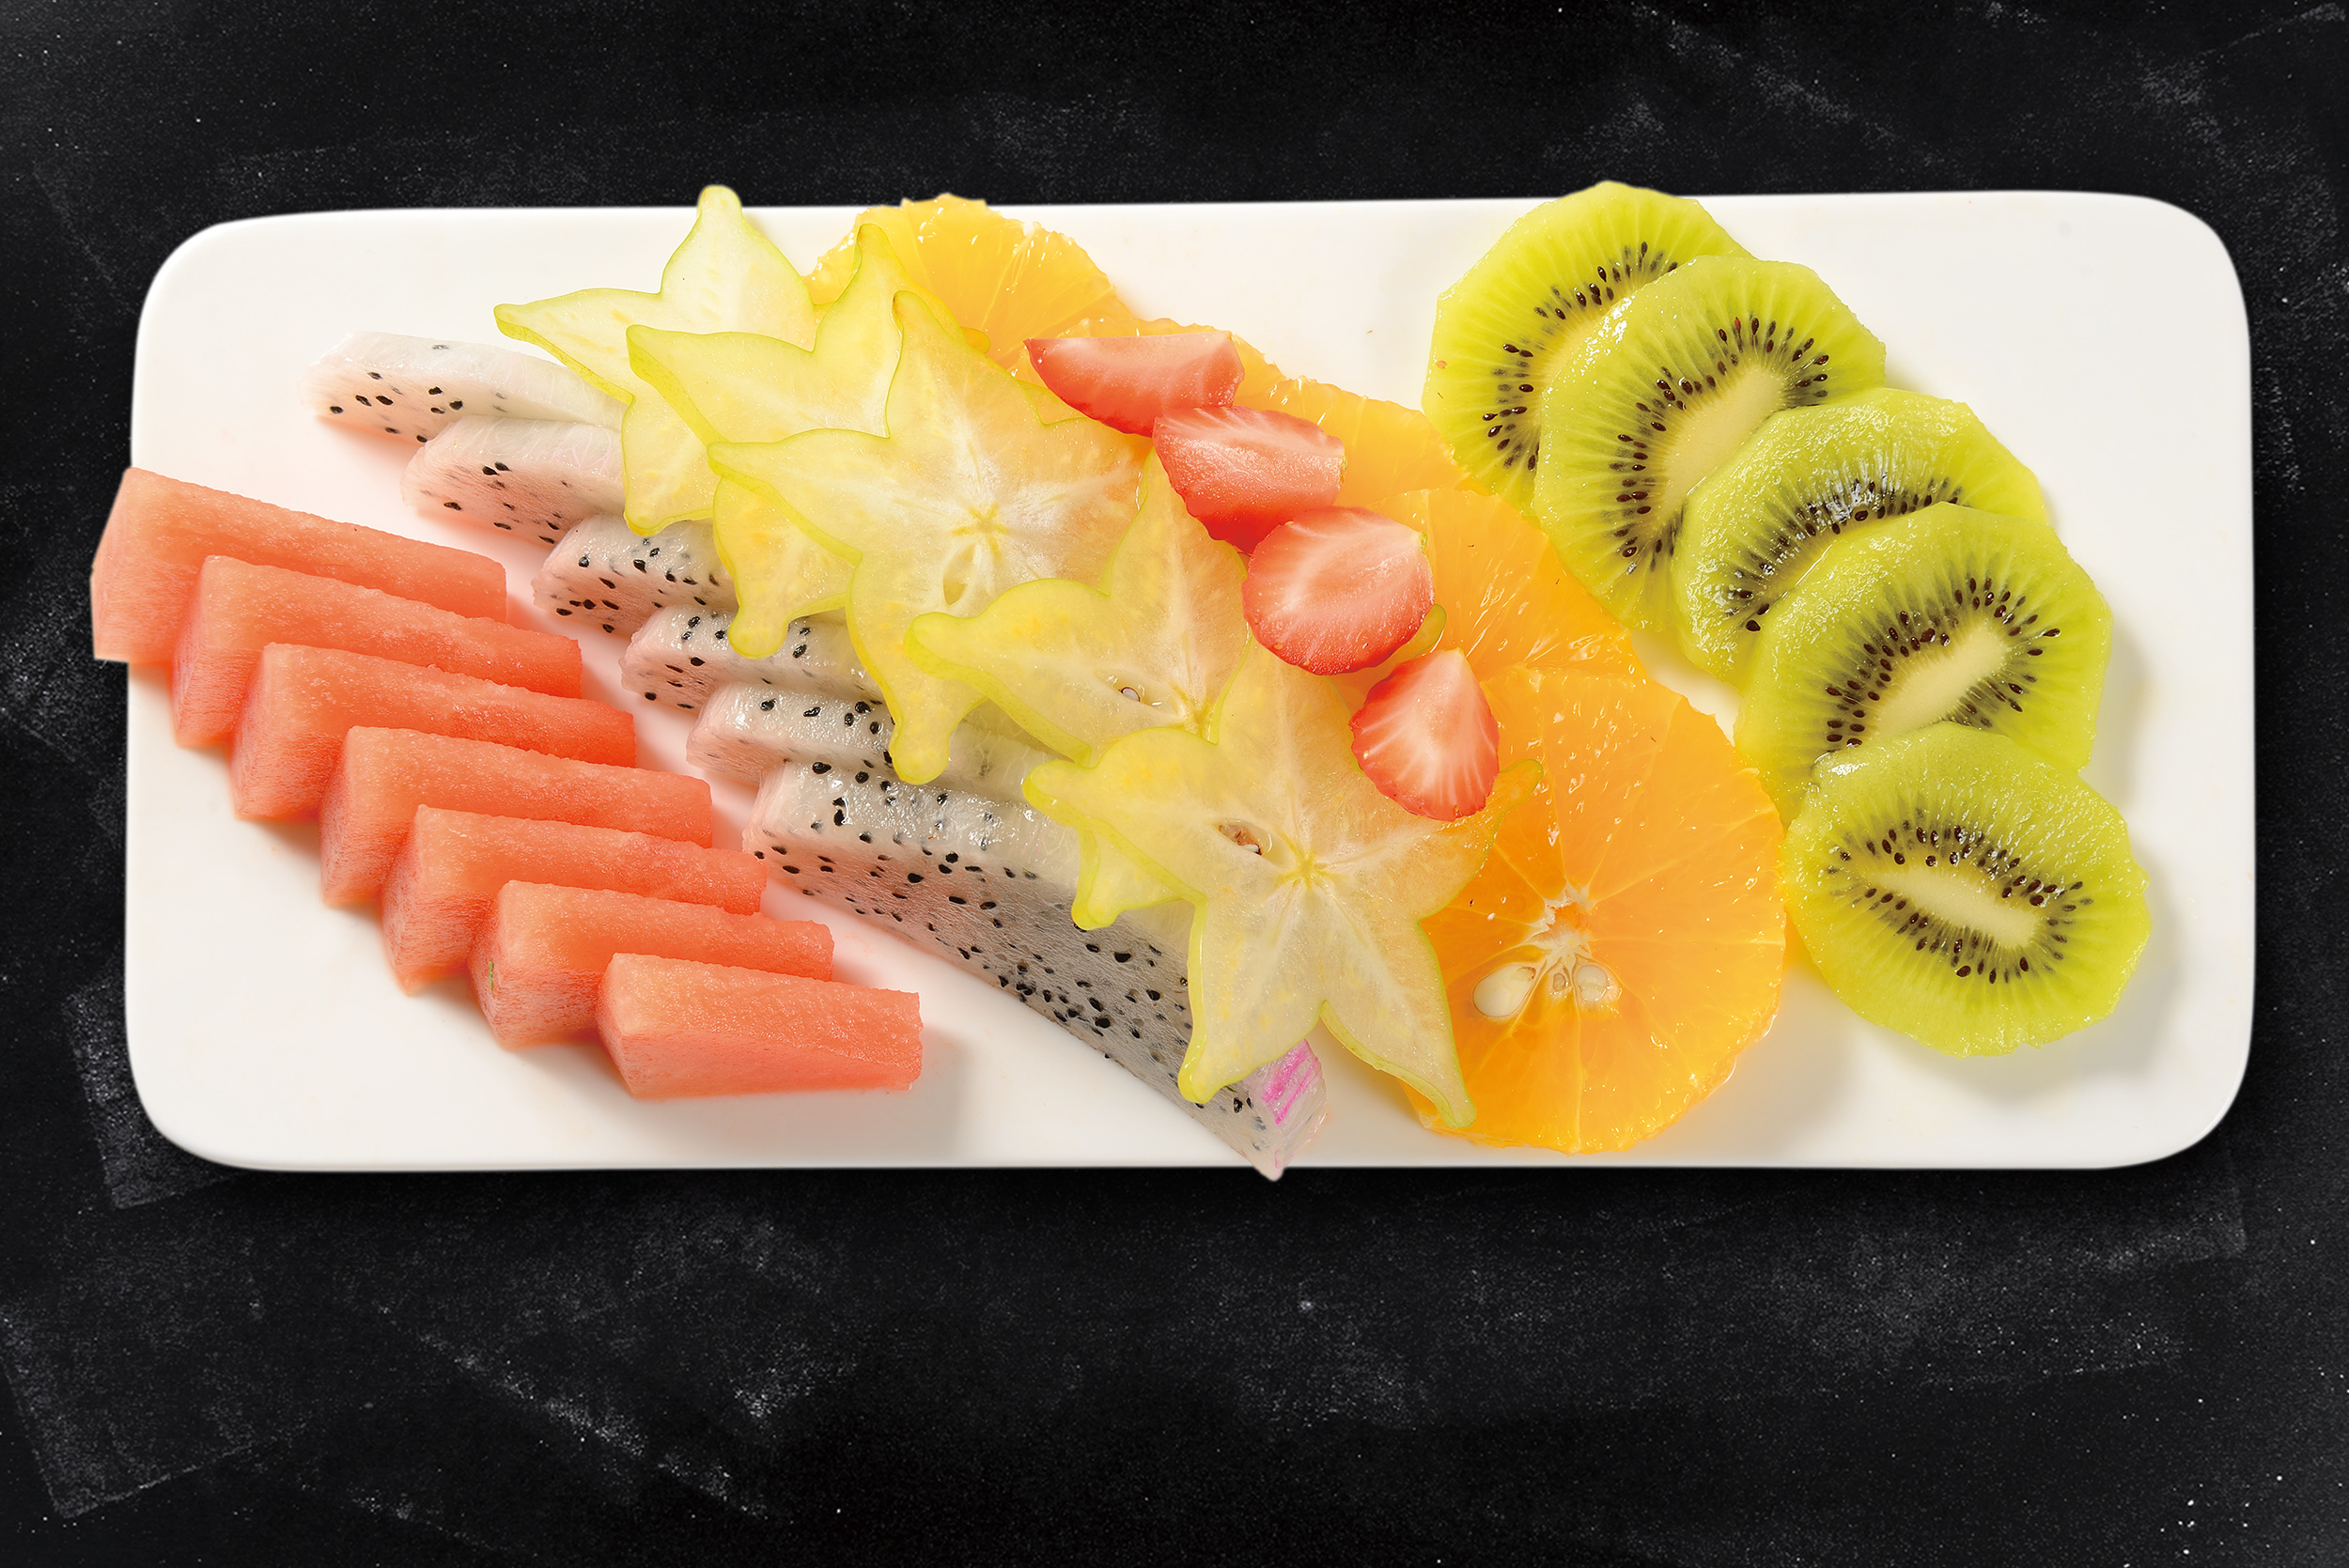 <b>Fruit Plate</b><br/>Assorted Fresh Seasonal Fruits, Using the best local &